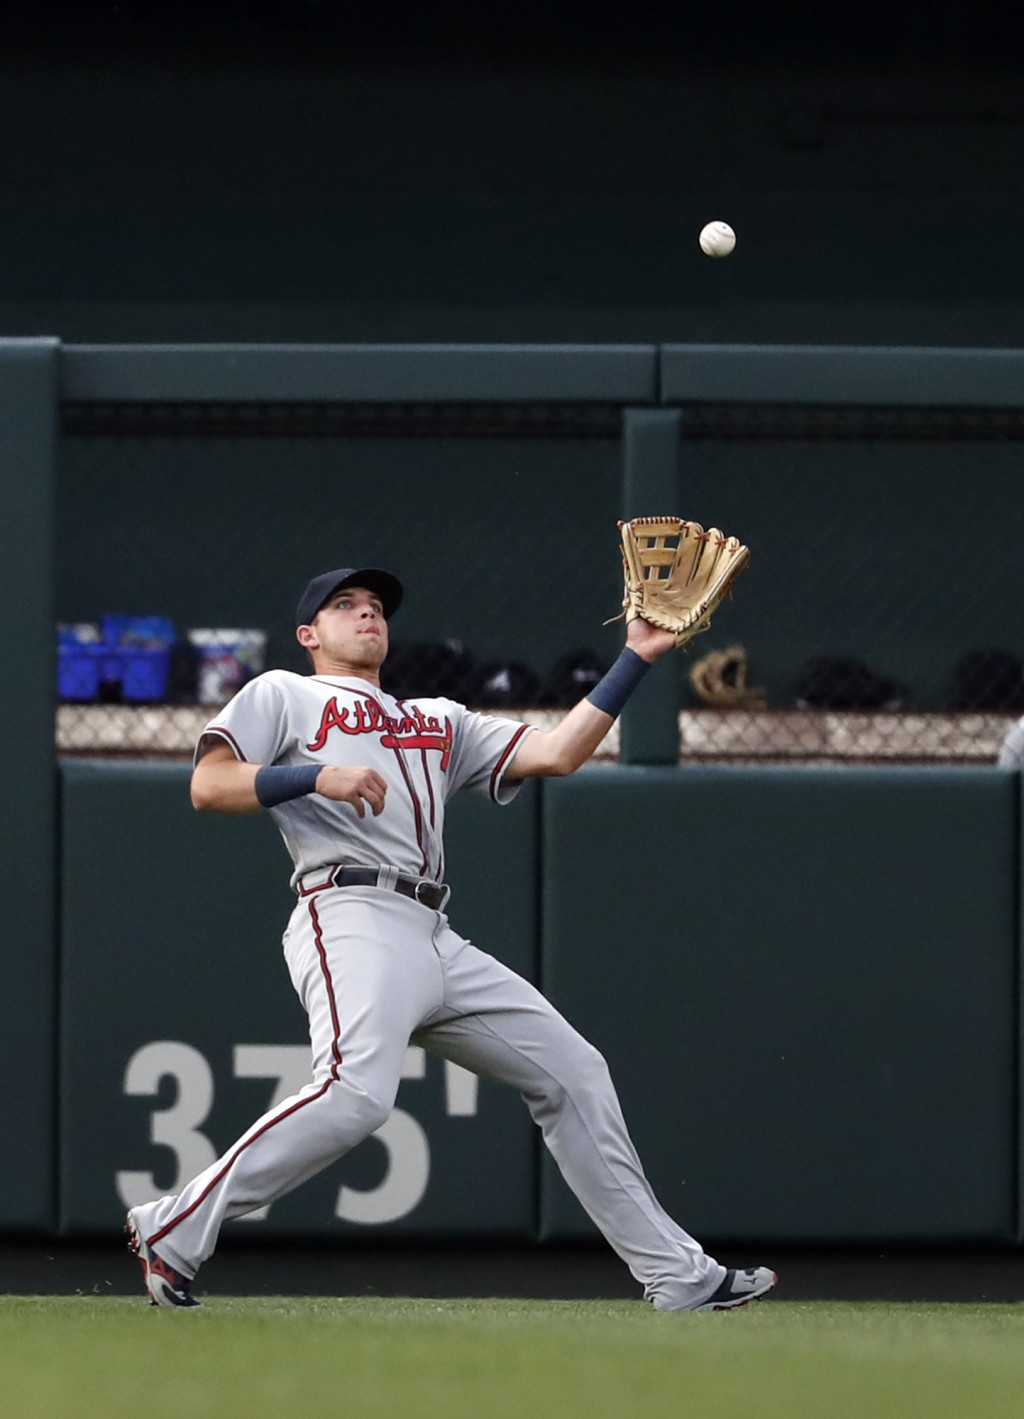 Atlanta Braves left fielder Austin Riley is unable to catch a fly ball by St. Louis Cardinals' Kolten Wong during the fourth inning of a baseball game